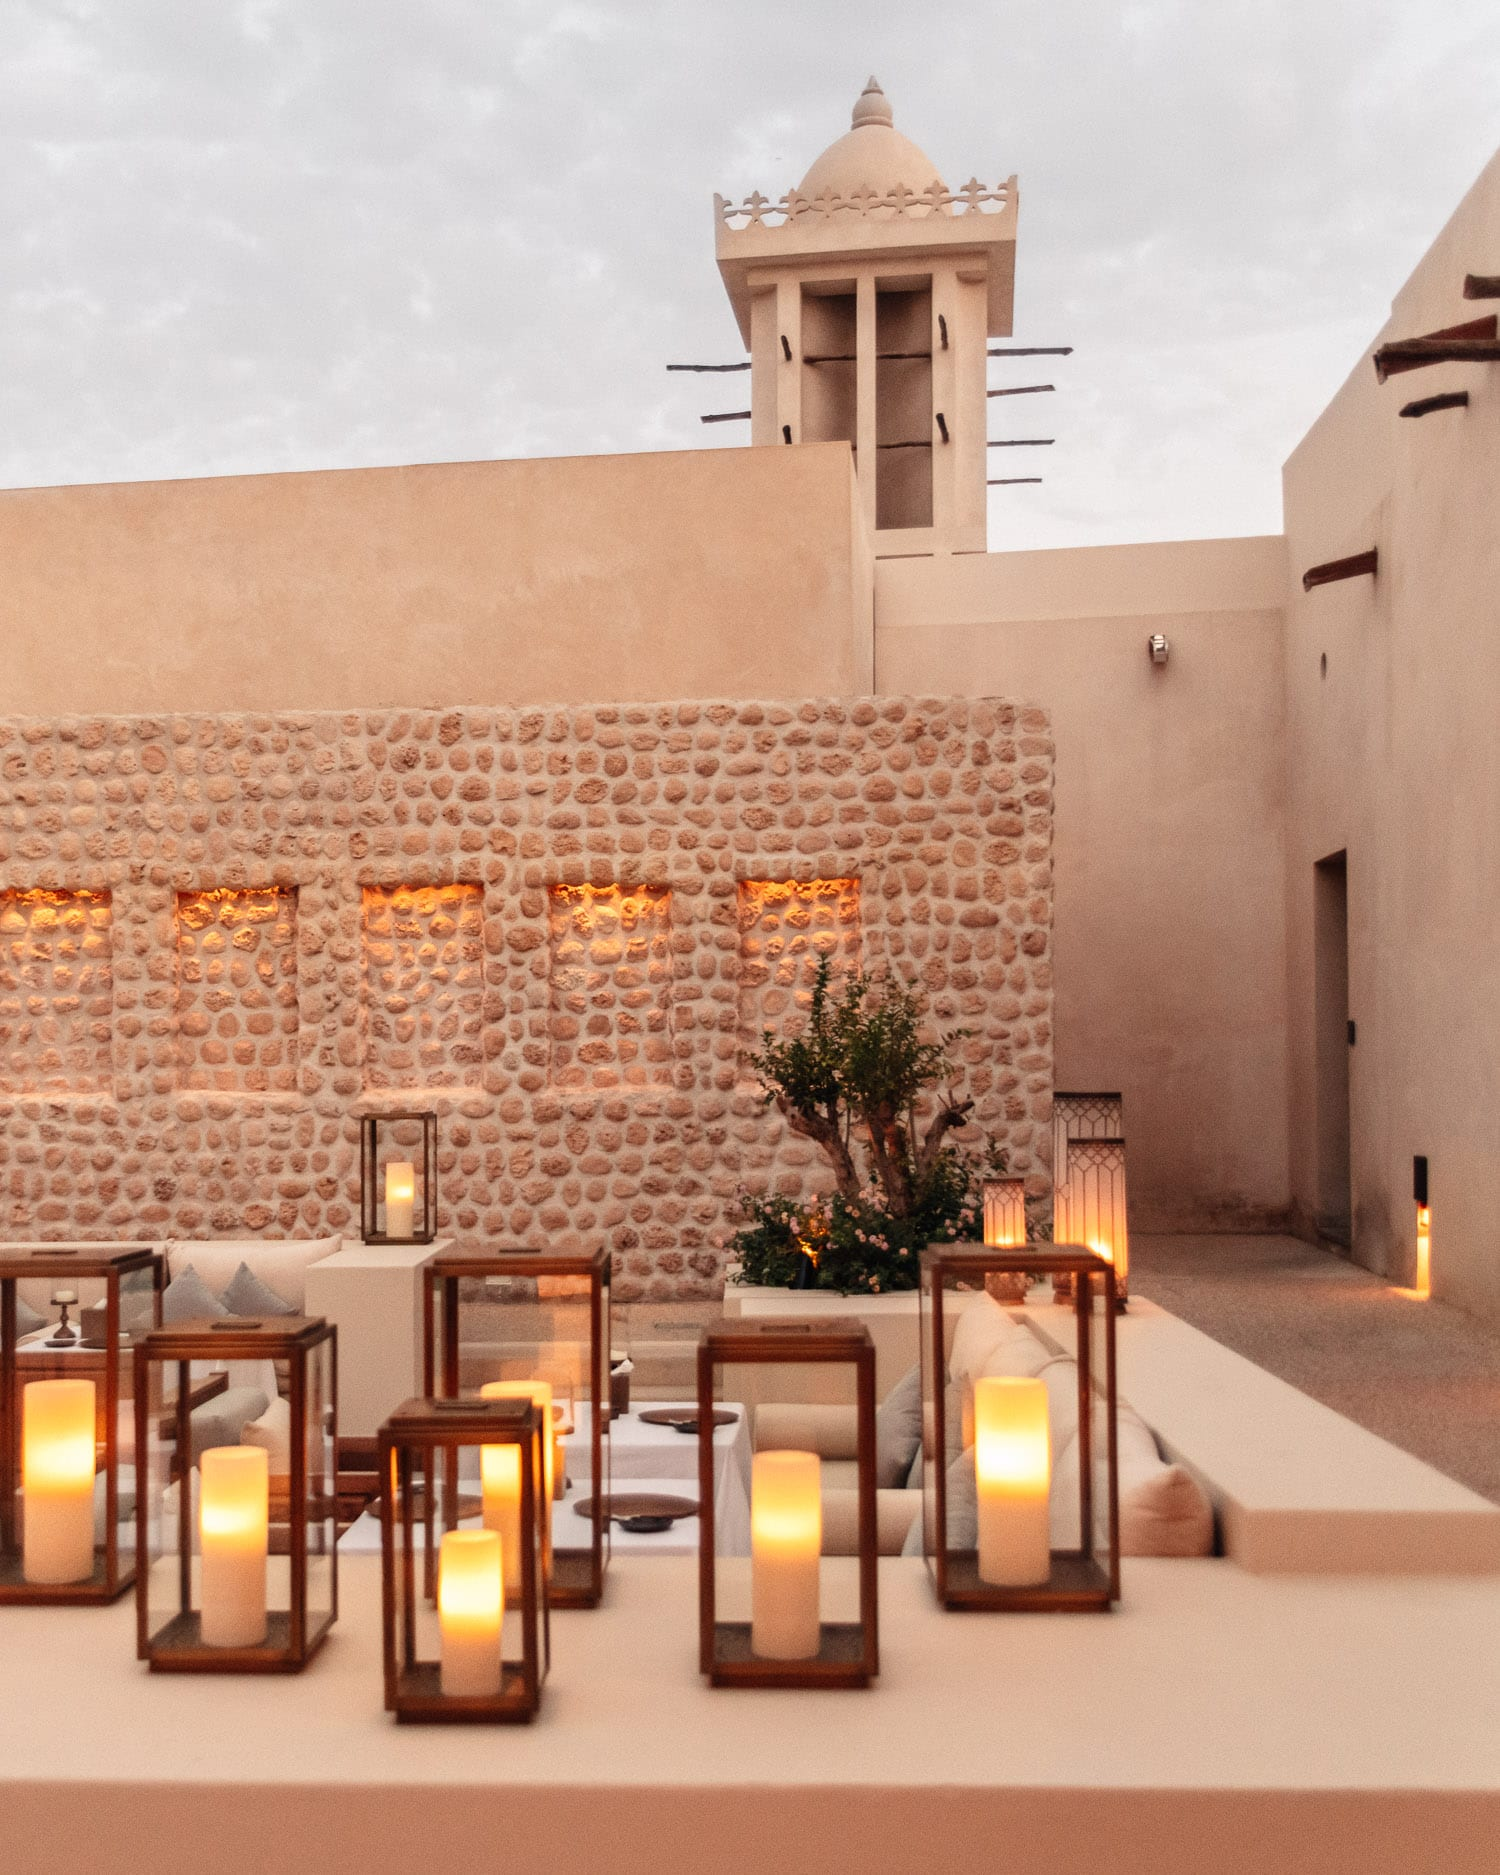 Outdoor dining, The Arabic Restaurant, Al Bait Sharjah